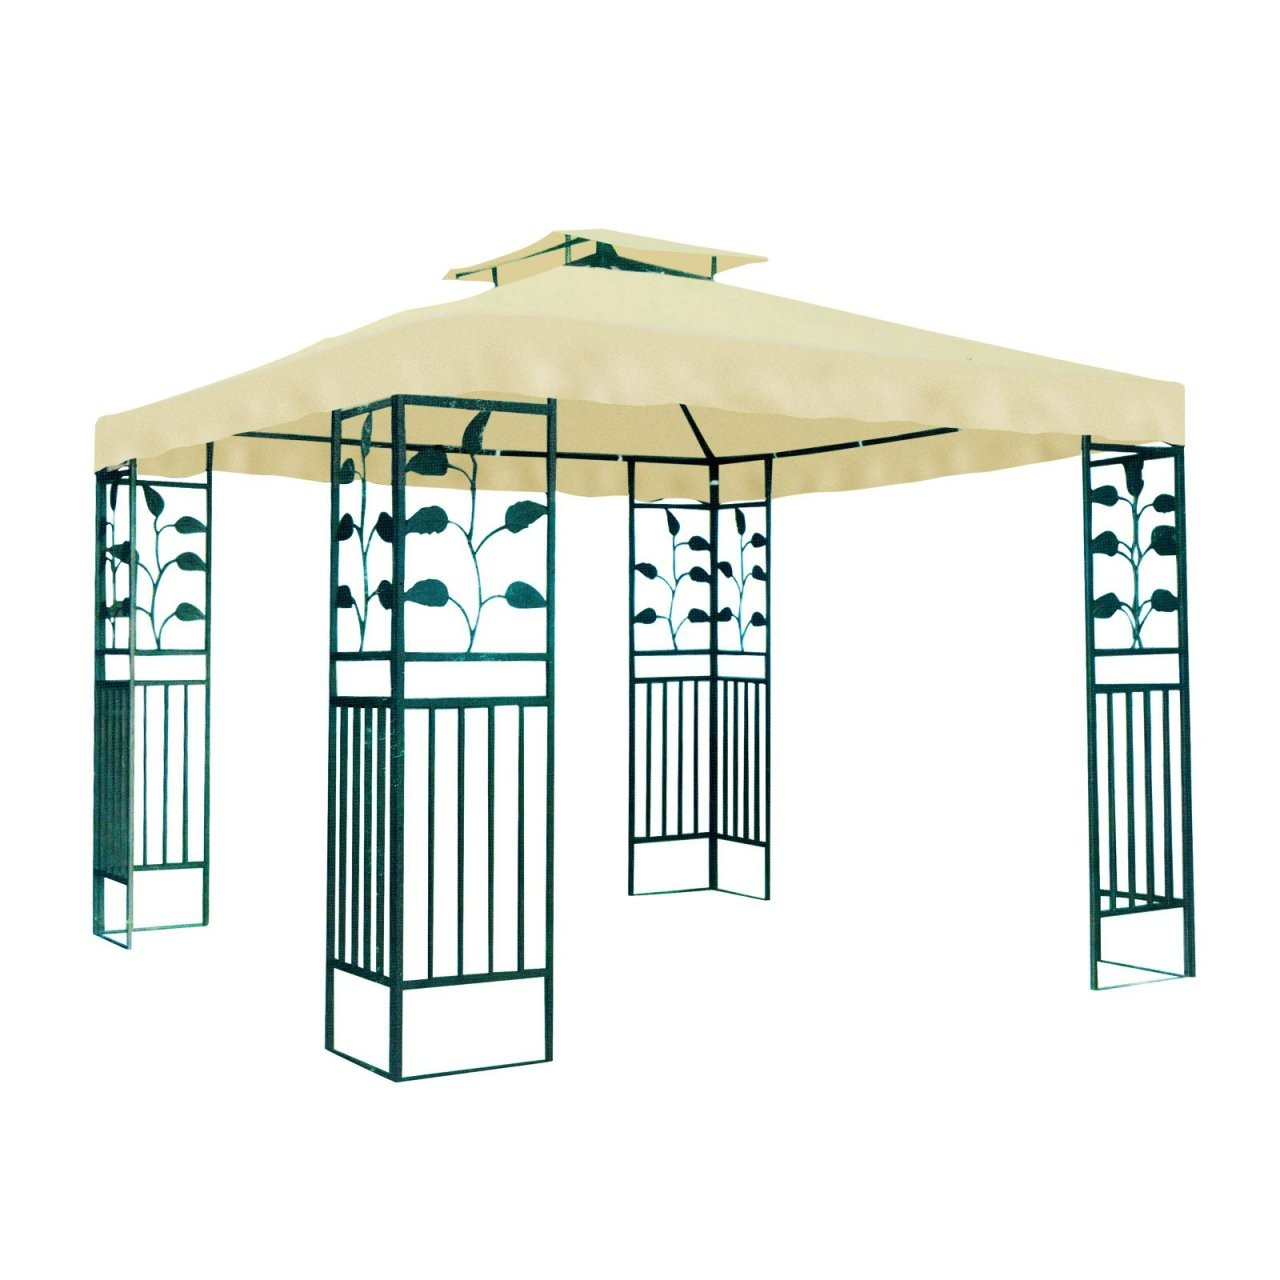 Gartenpavillon  Metallpavillon 3X3 Meter Gartenzelt Pavillon von Pavillon Metall 3X3 Wasserdicht Photo